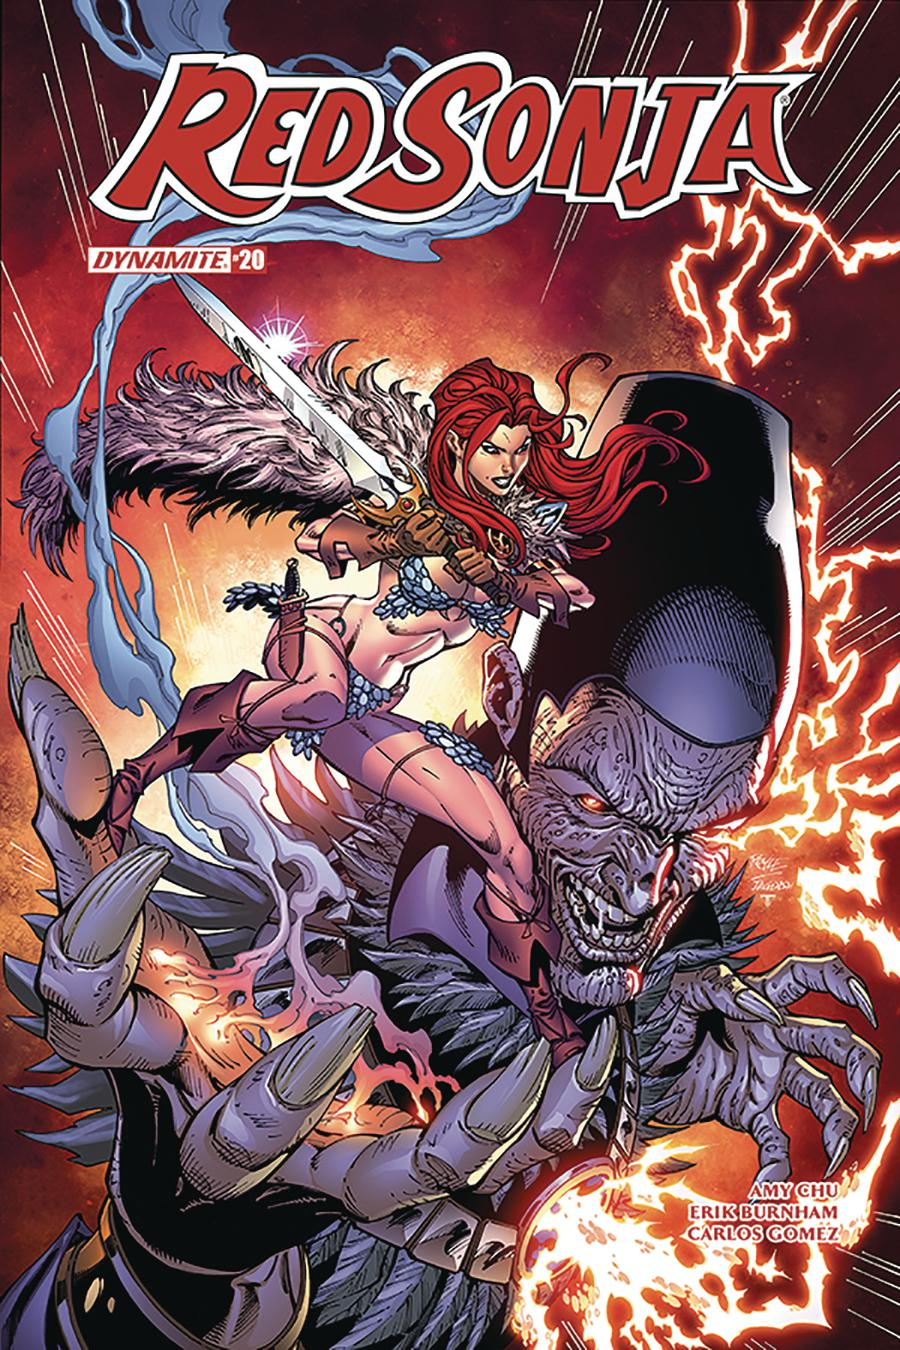 Red Sonja Vol 7 #20 Cover C Variant John Royle Cover